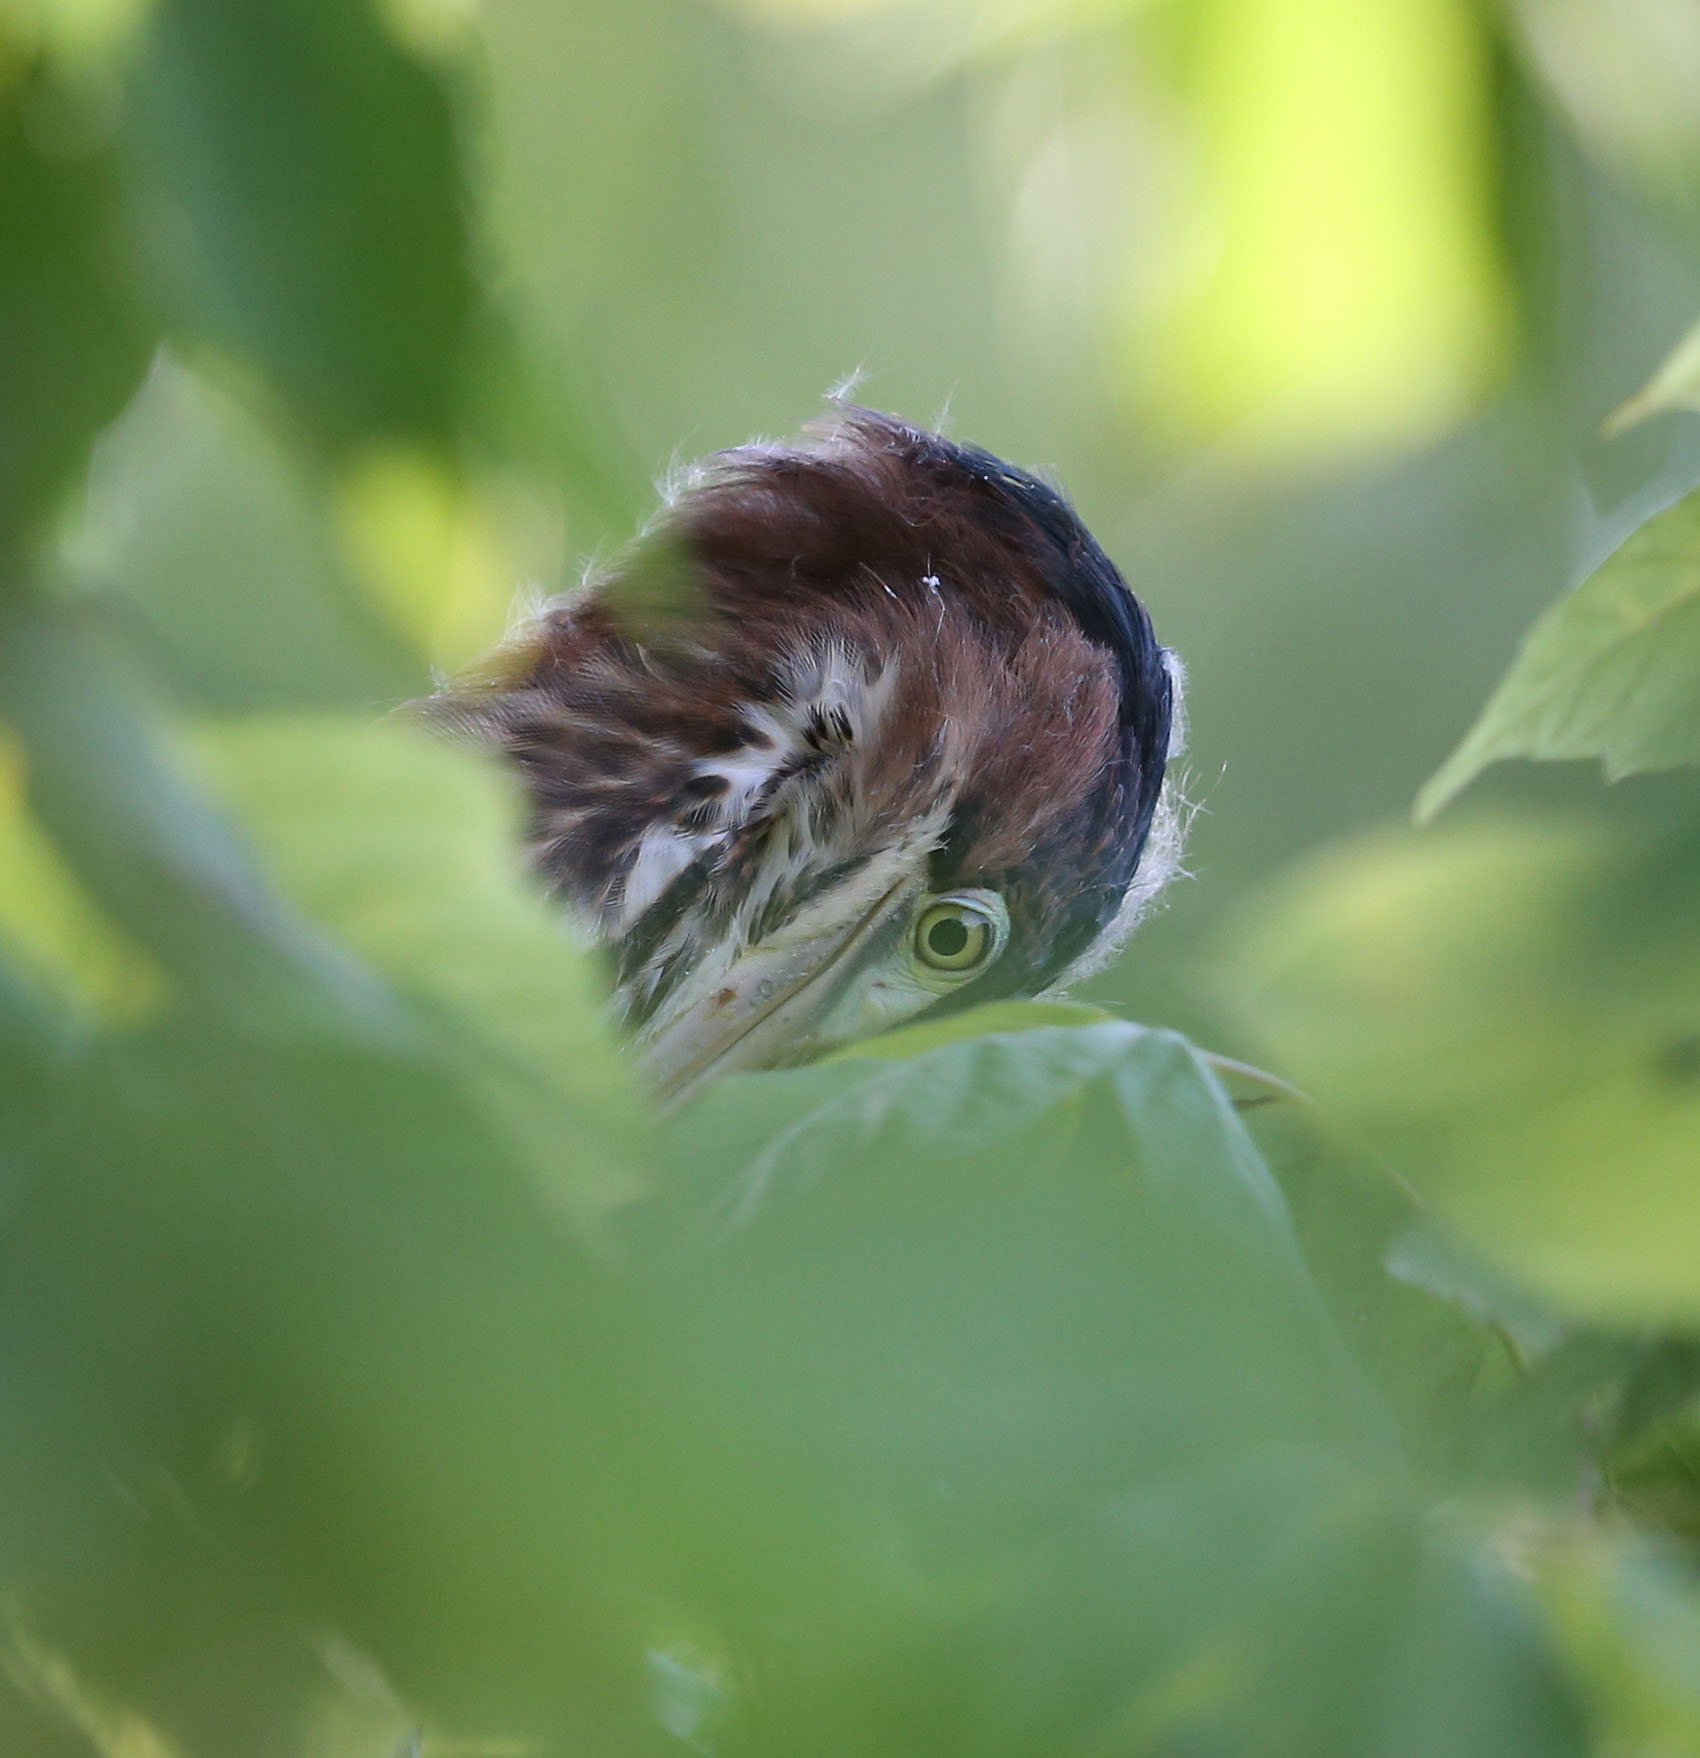 Juvenile Green Heron in foliage